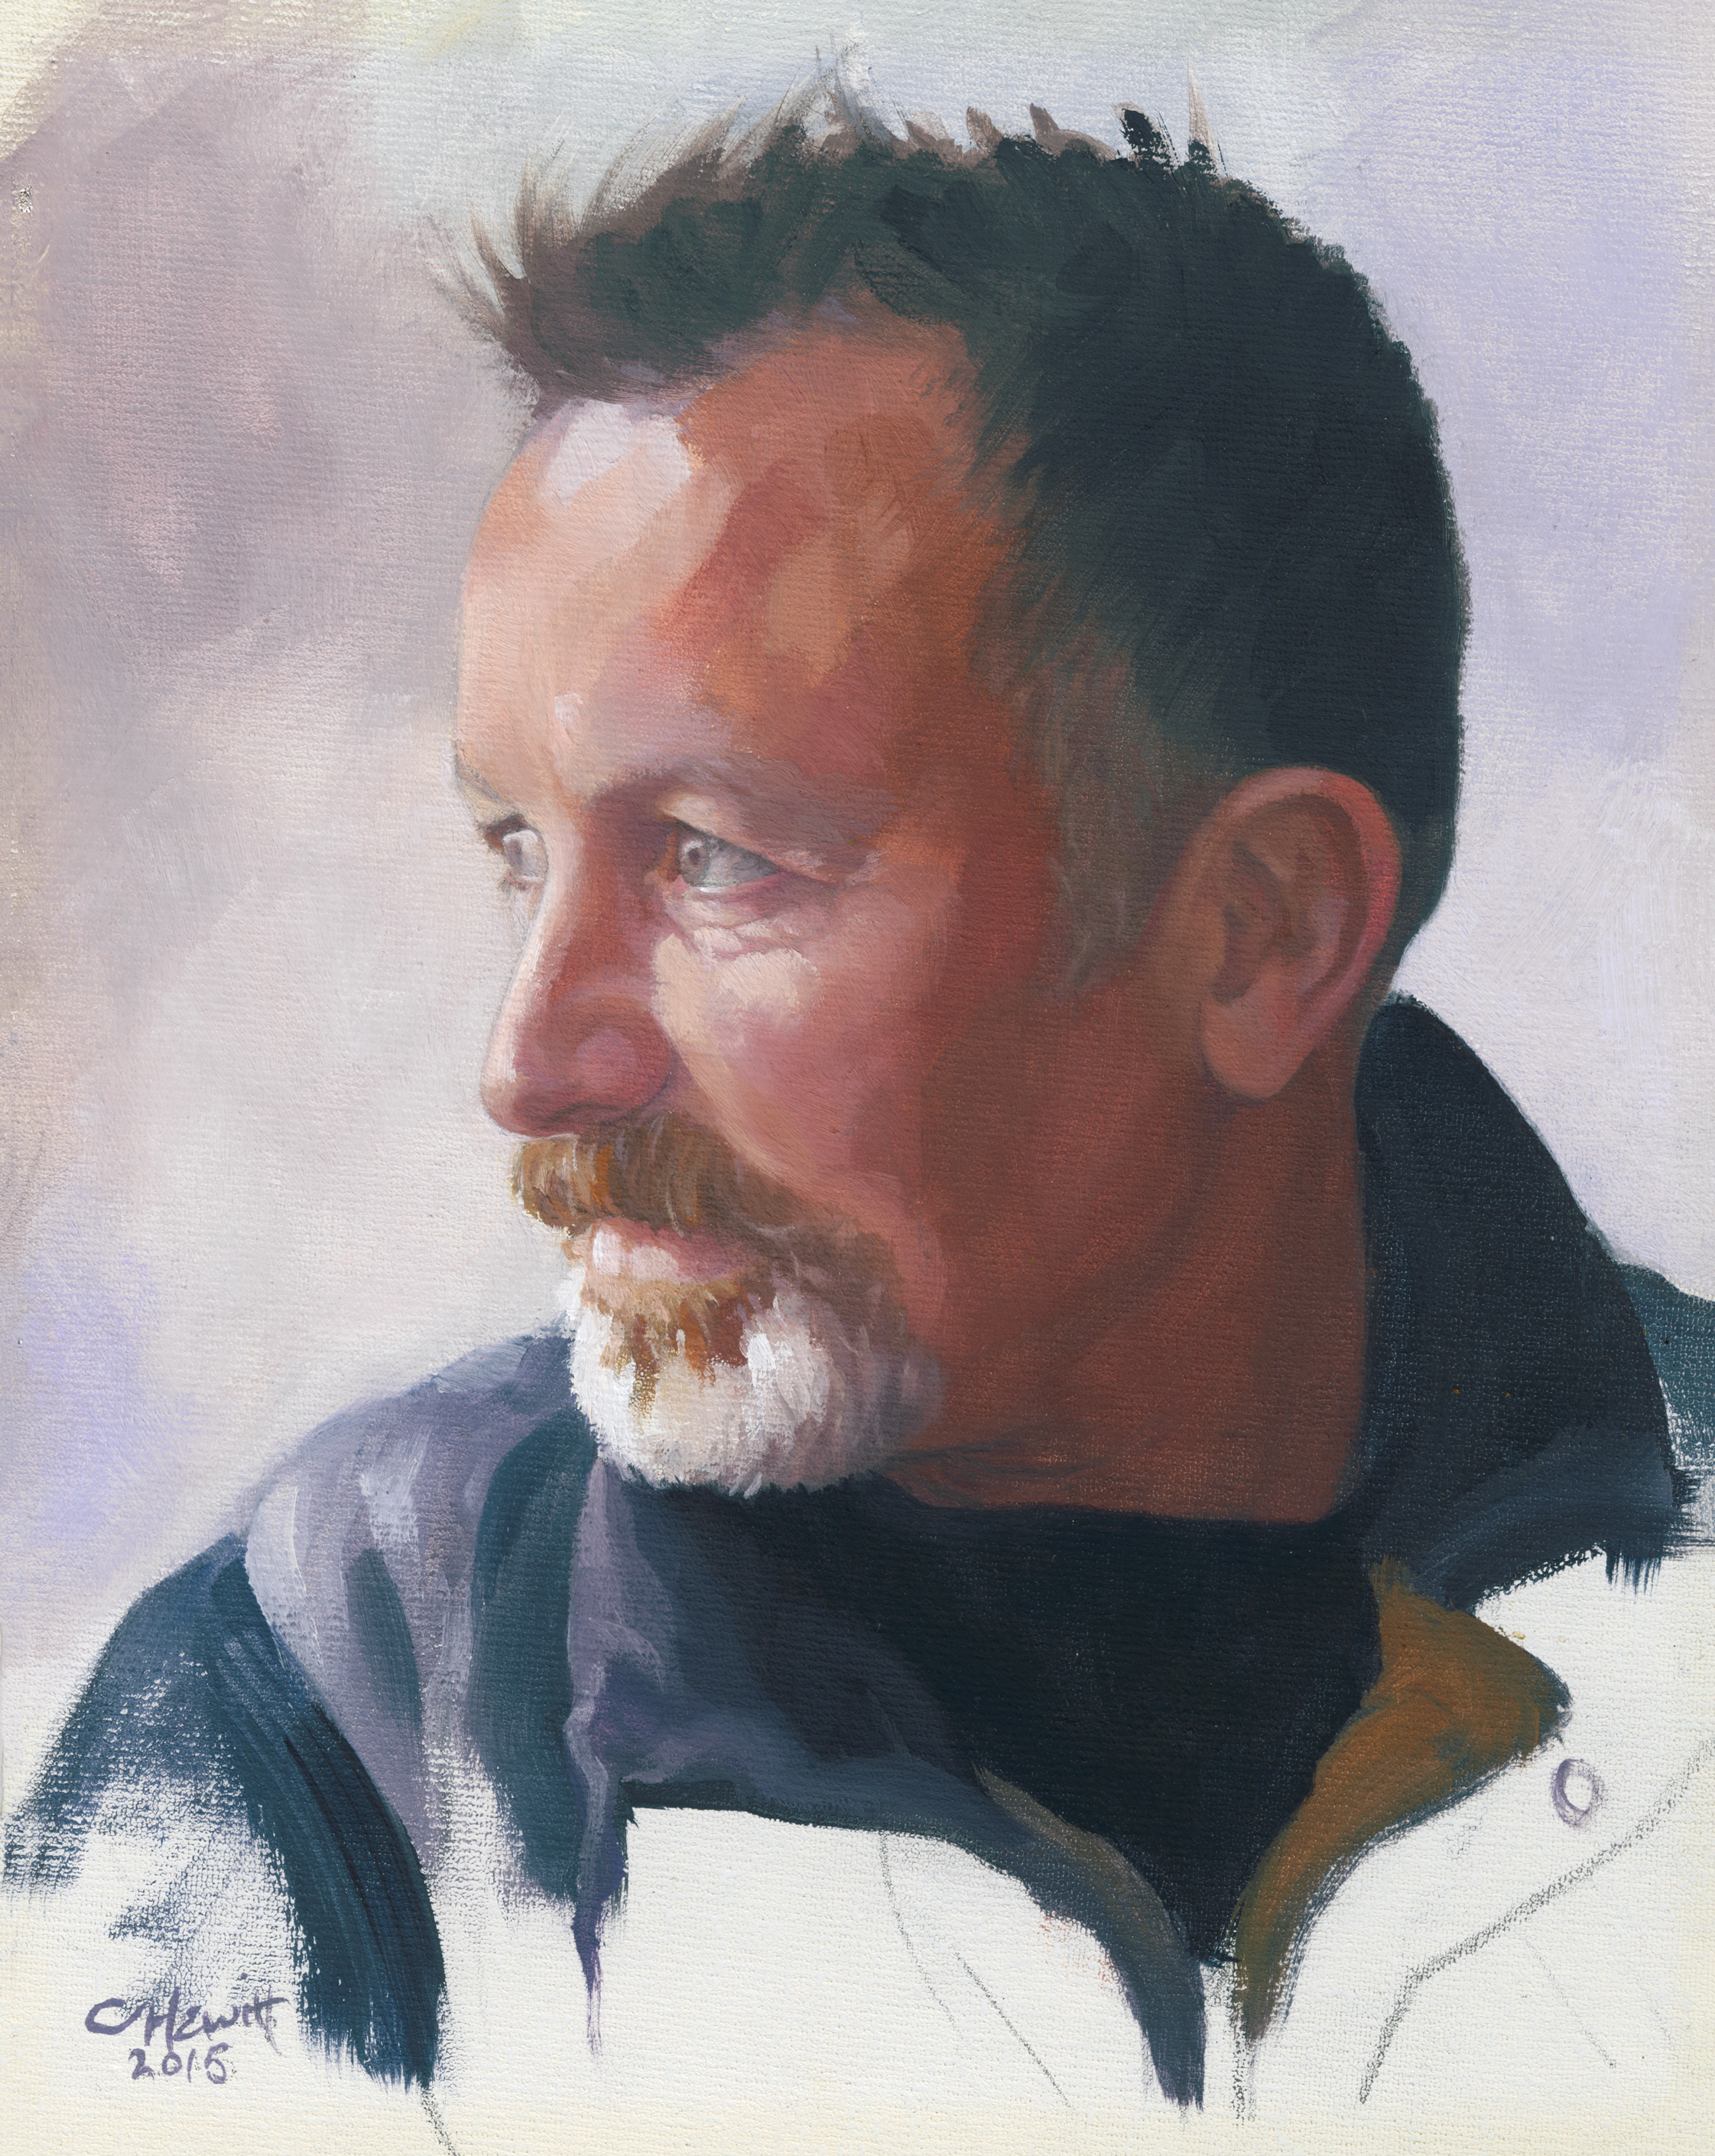 'Ian', oil on canvas board, 29x25cm. Exhibited at the Scottish Portrait Awards at the Scottish Arts Club, Edinburgh.